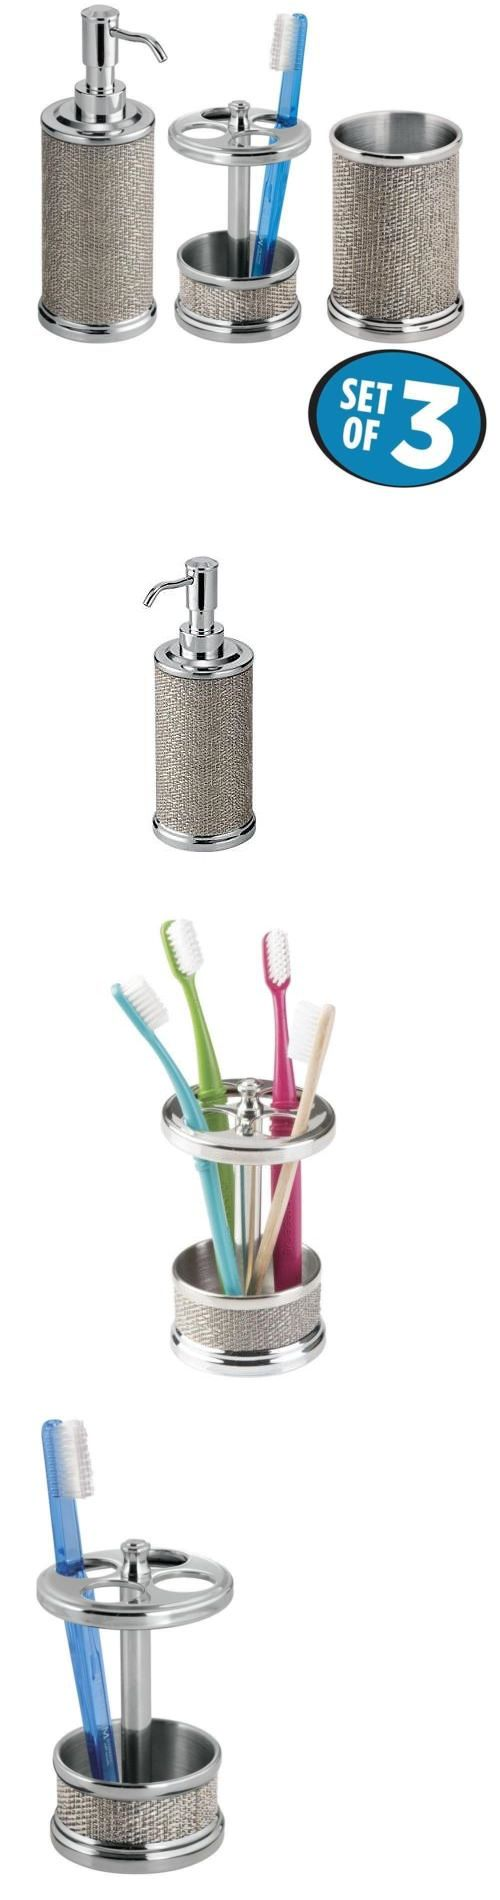 Toilet Brushes and Sets 66723: Mdesign Bath Accessory Set Suction Shower Basket Toilet Bowl Brush And Holder Tr -> BUY IT NOW ONLY: $40.78 on eBay!